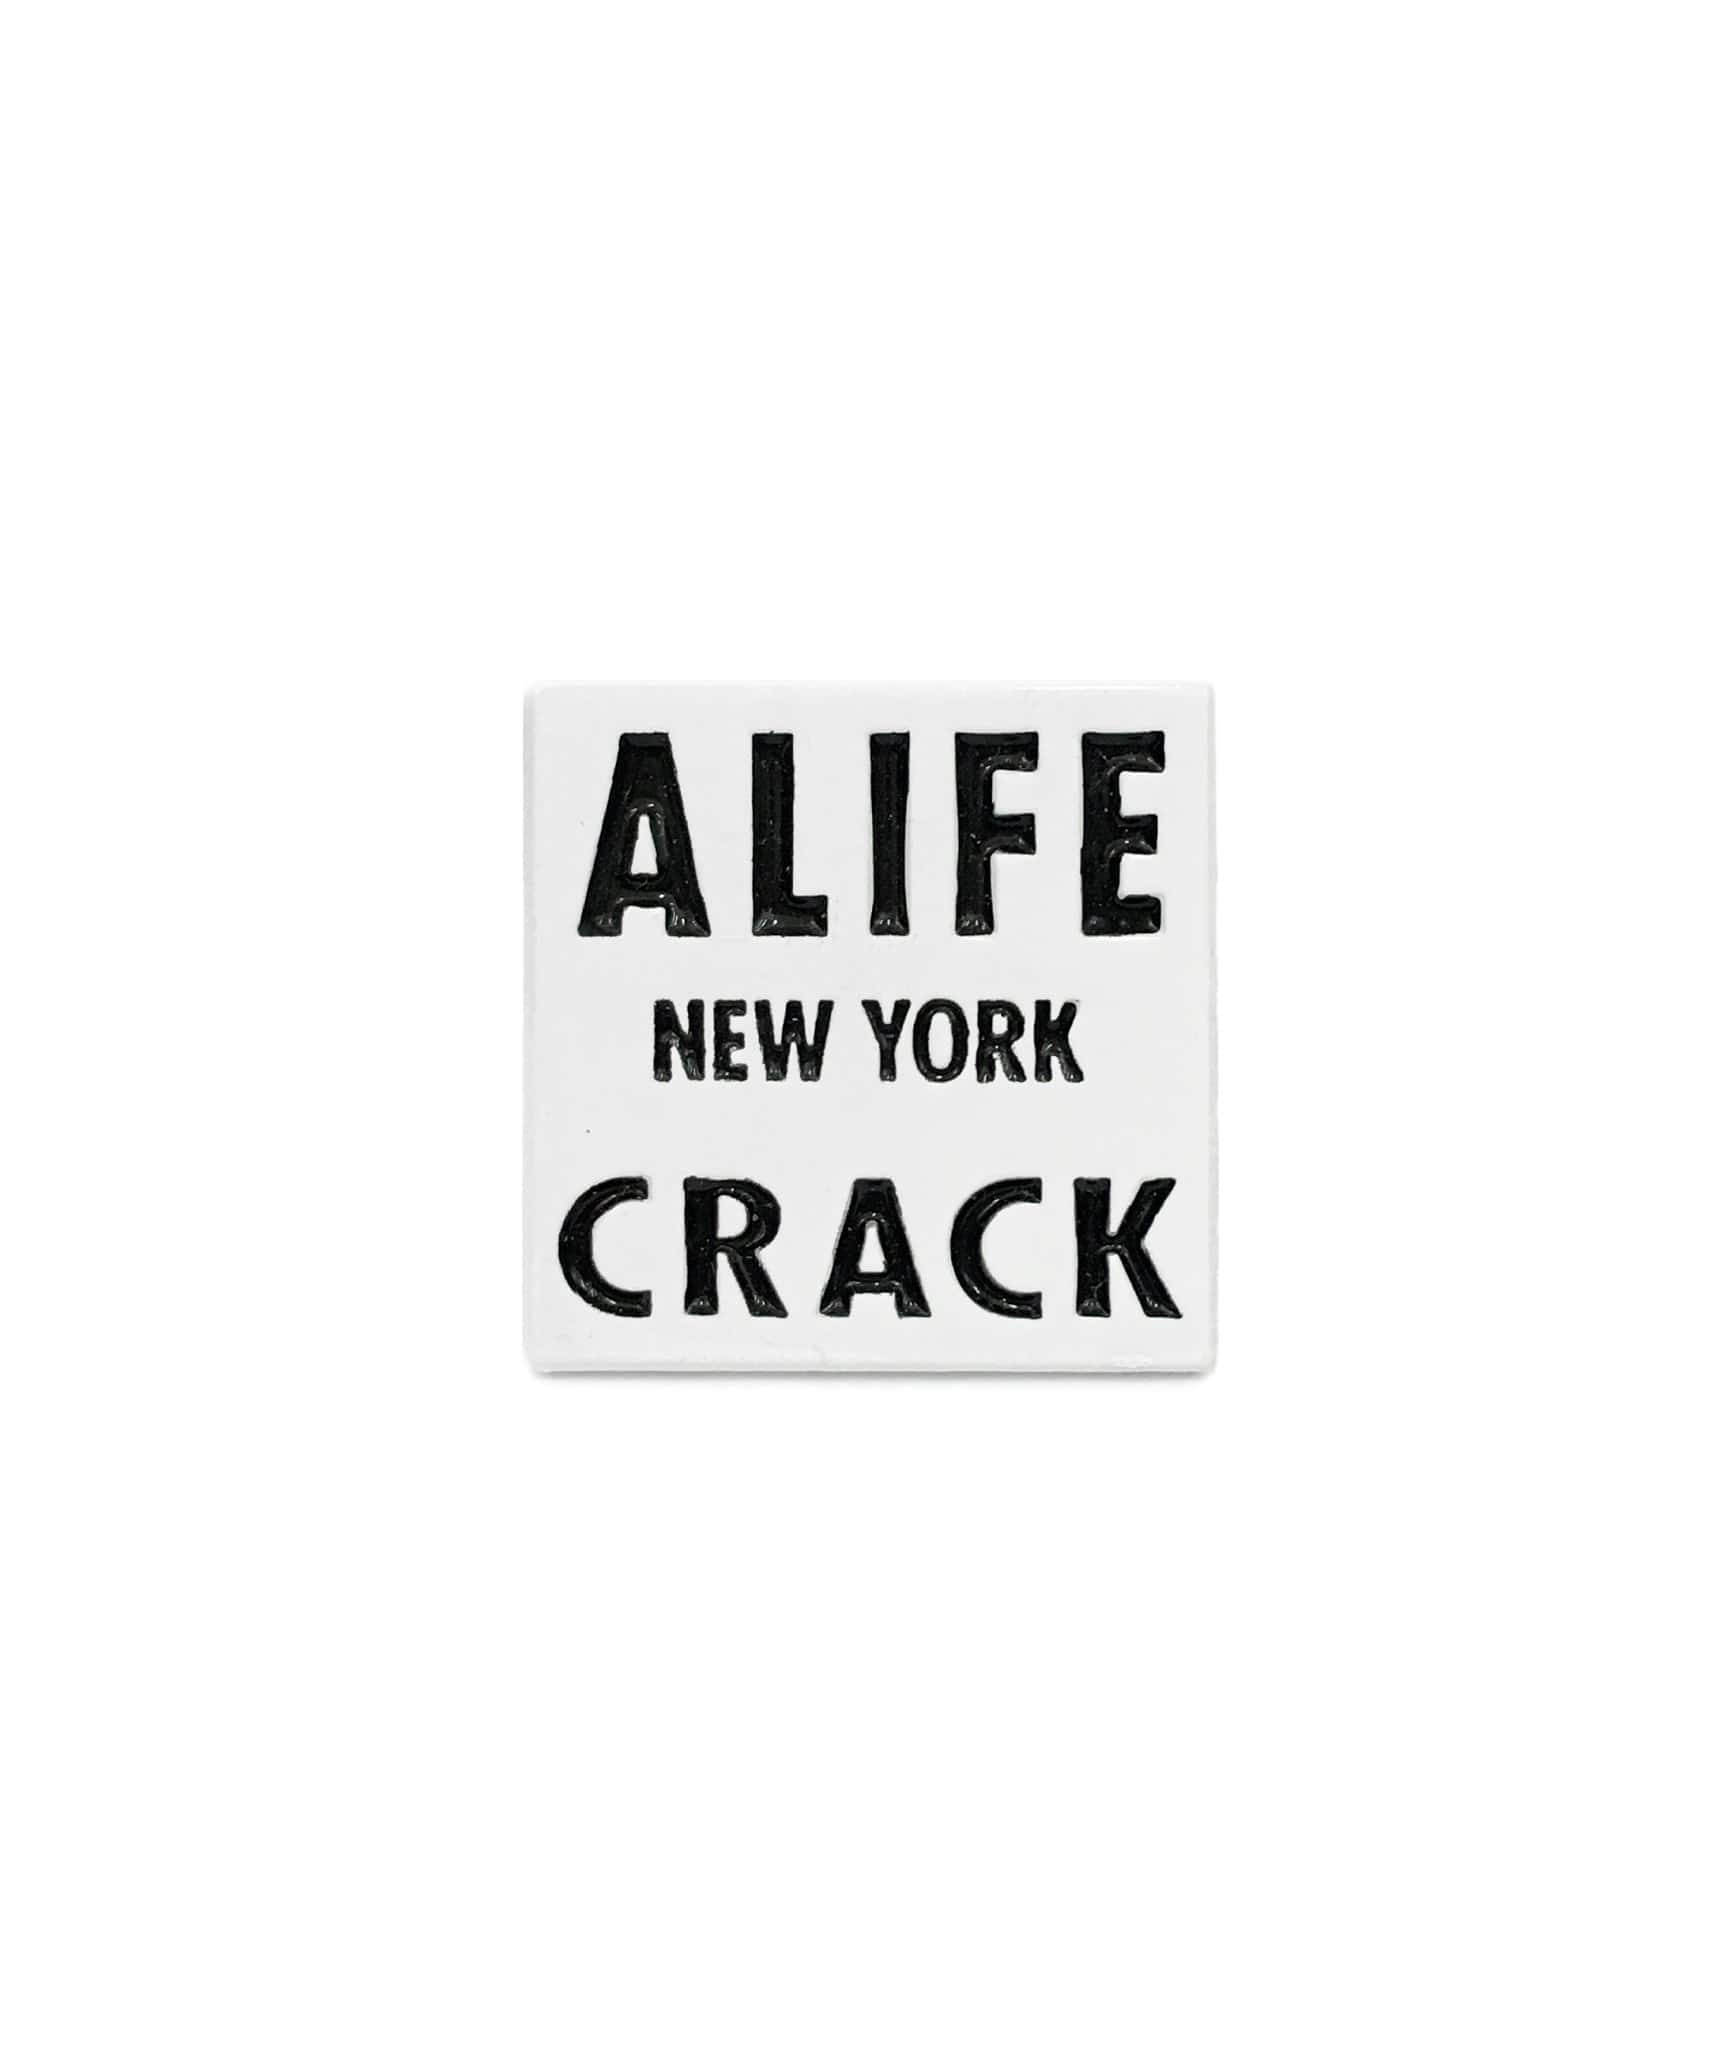 Alife New York Crack Square Pin